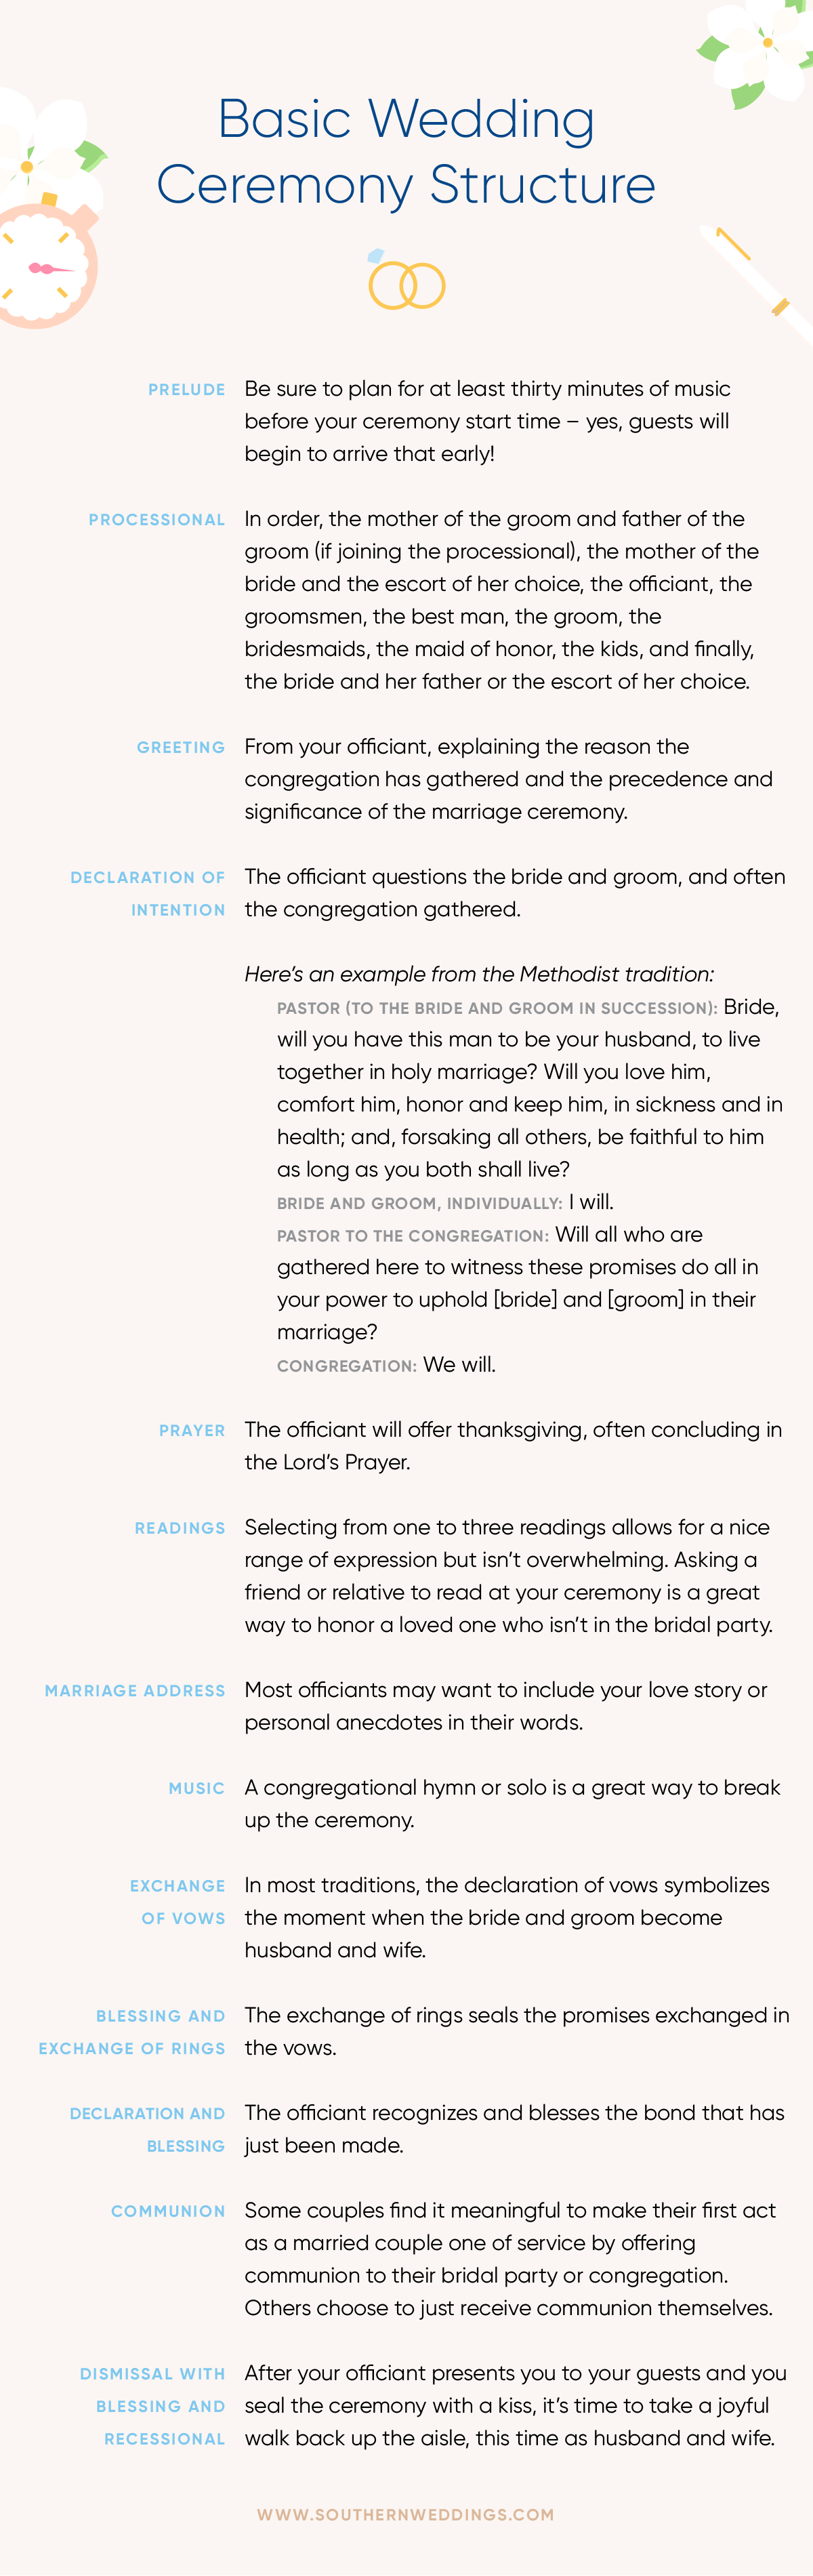 The Basic Wedding Ceremony Structure Southern Weddings Wedding Ceremony Script Wedding Ceremony Readings Wedding Ceremony